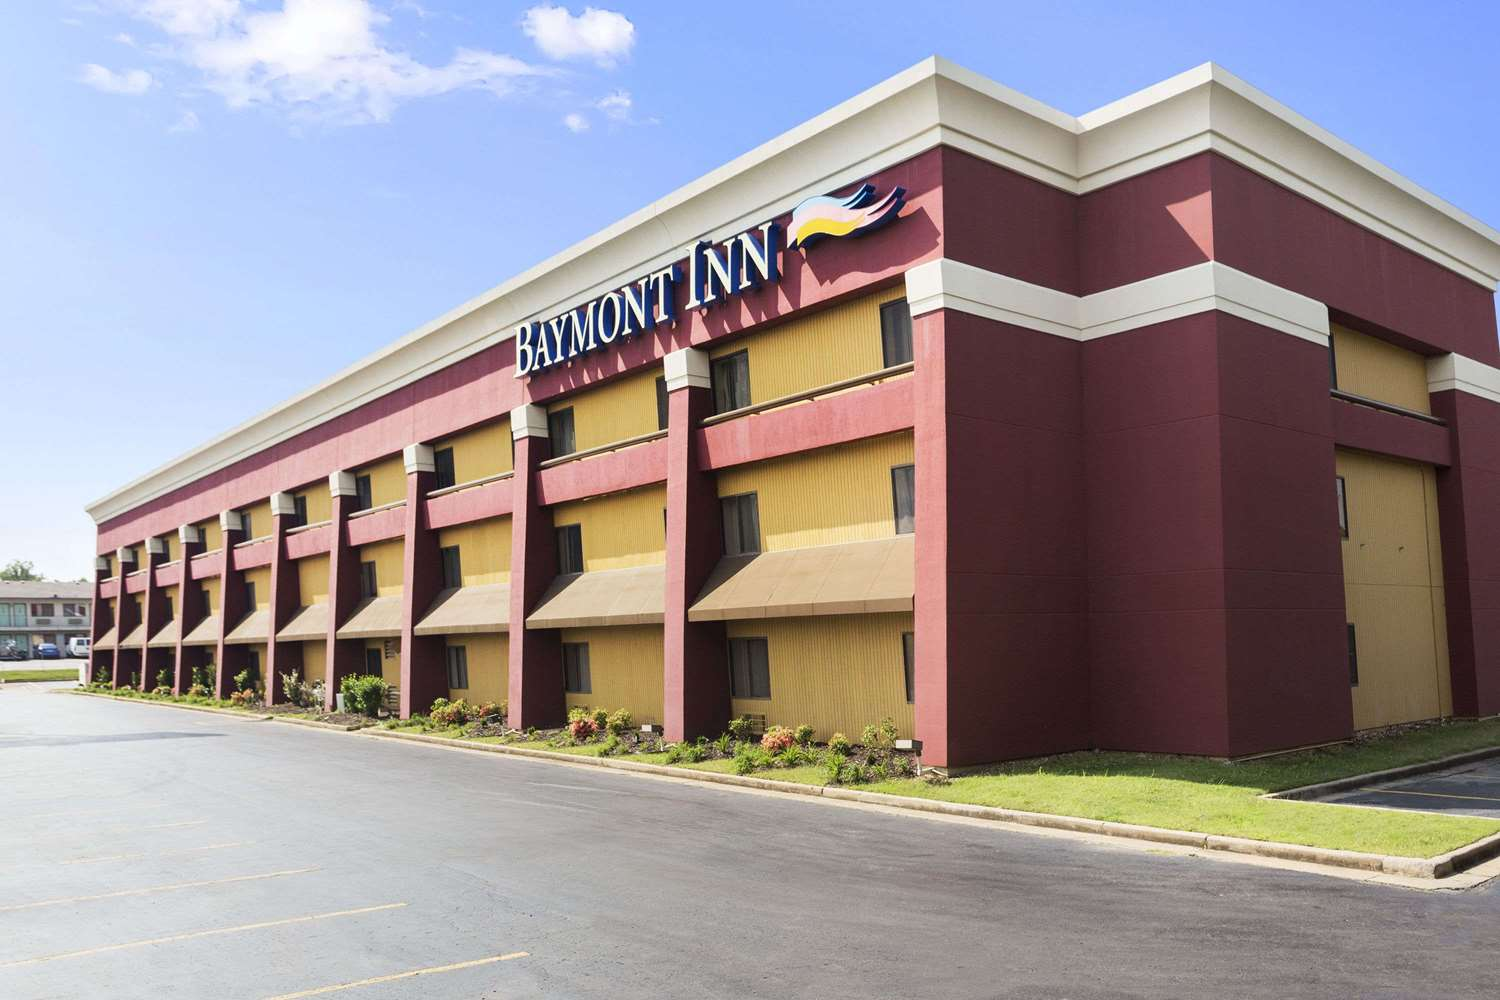 baymont inn suites fort smith ar see discounts. Black Bedroom Furniture Sets. Home Design Ideas